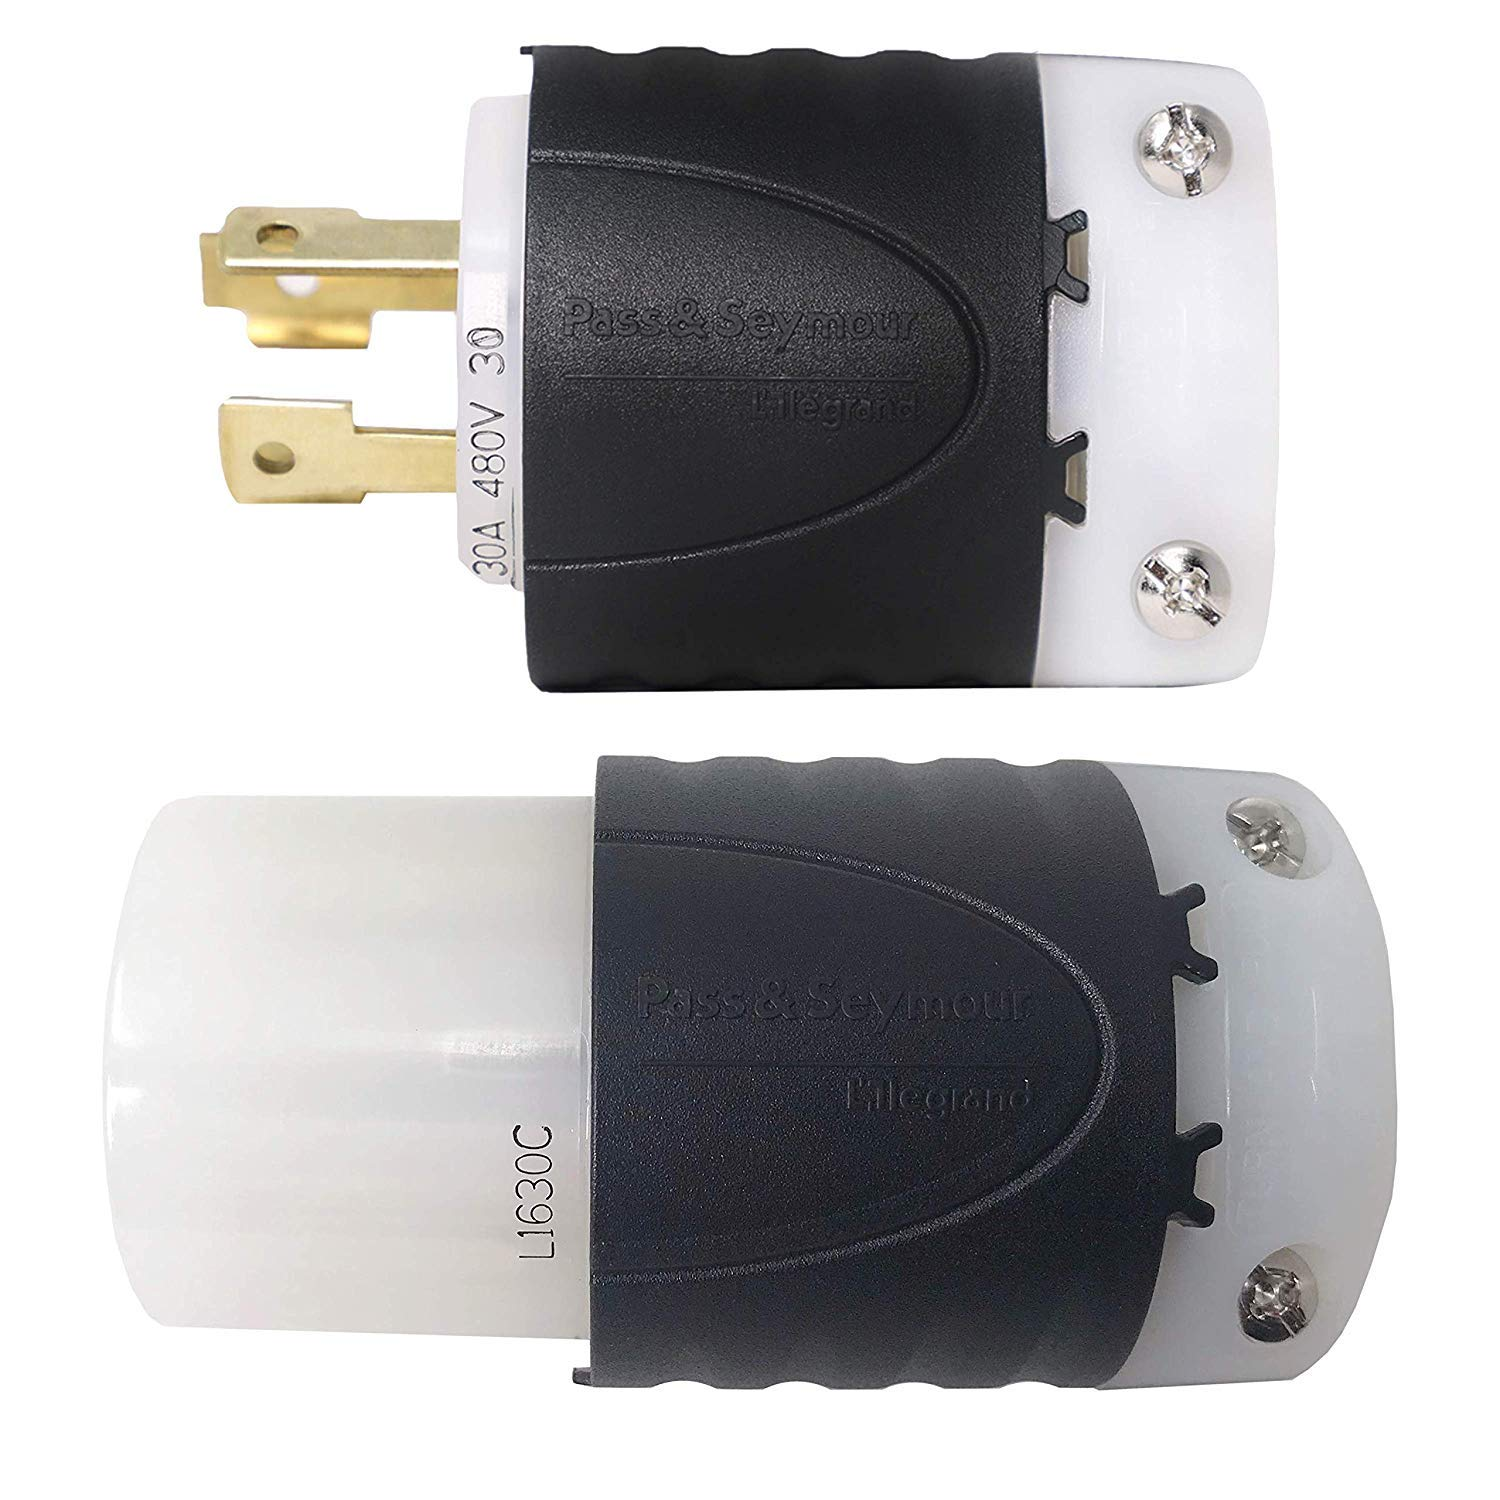 Iron Box Part # IBX-L1630PR 480V L16-30 Plug and Connector Set Rated for 30A 3-Phase